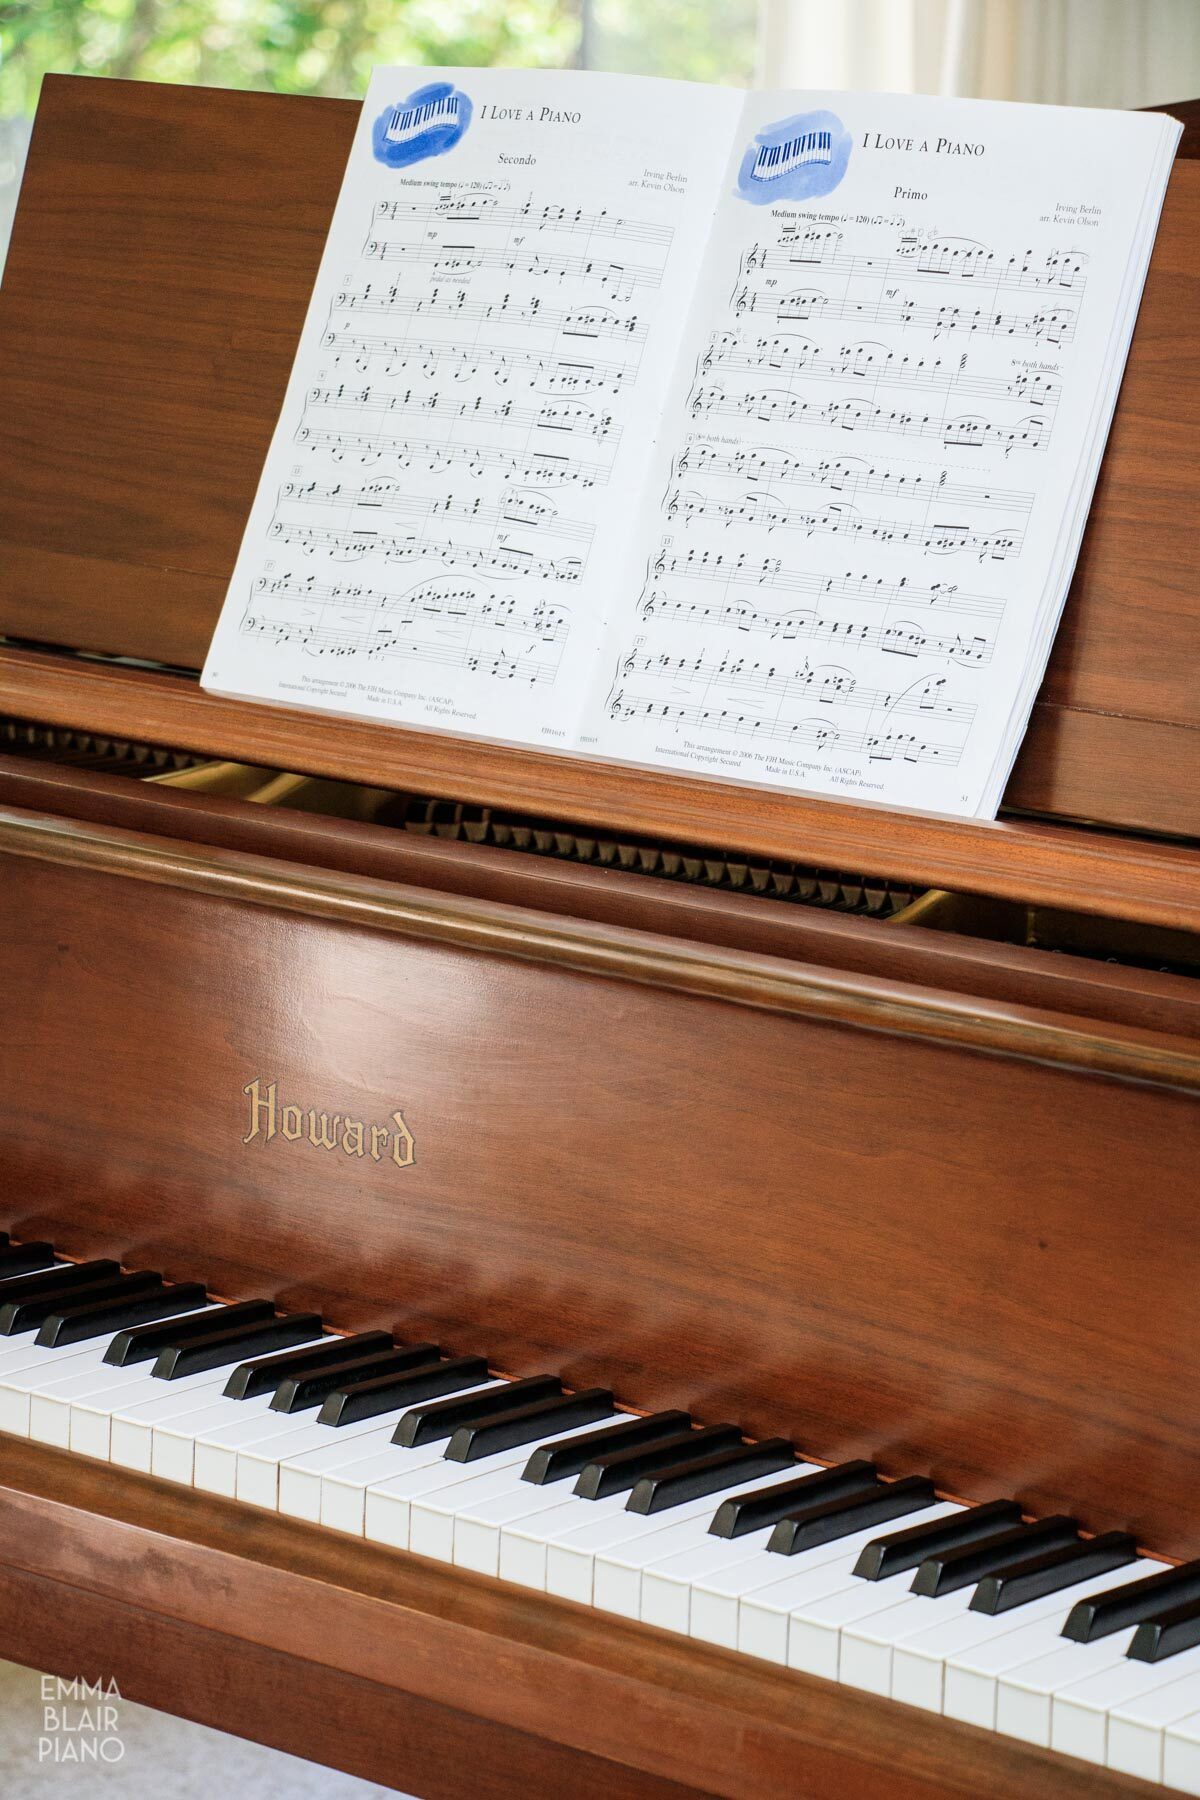 a book of duet piano music on the piano's music stand